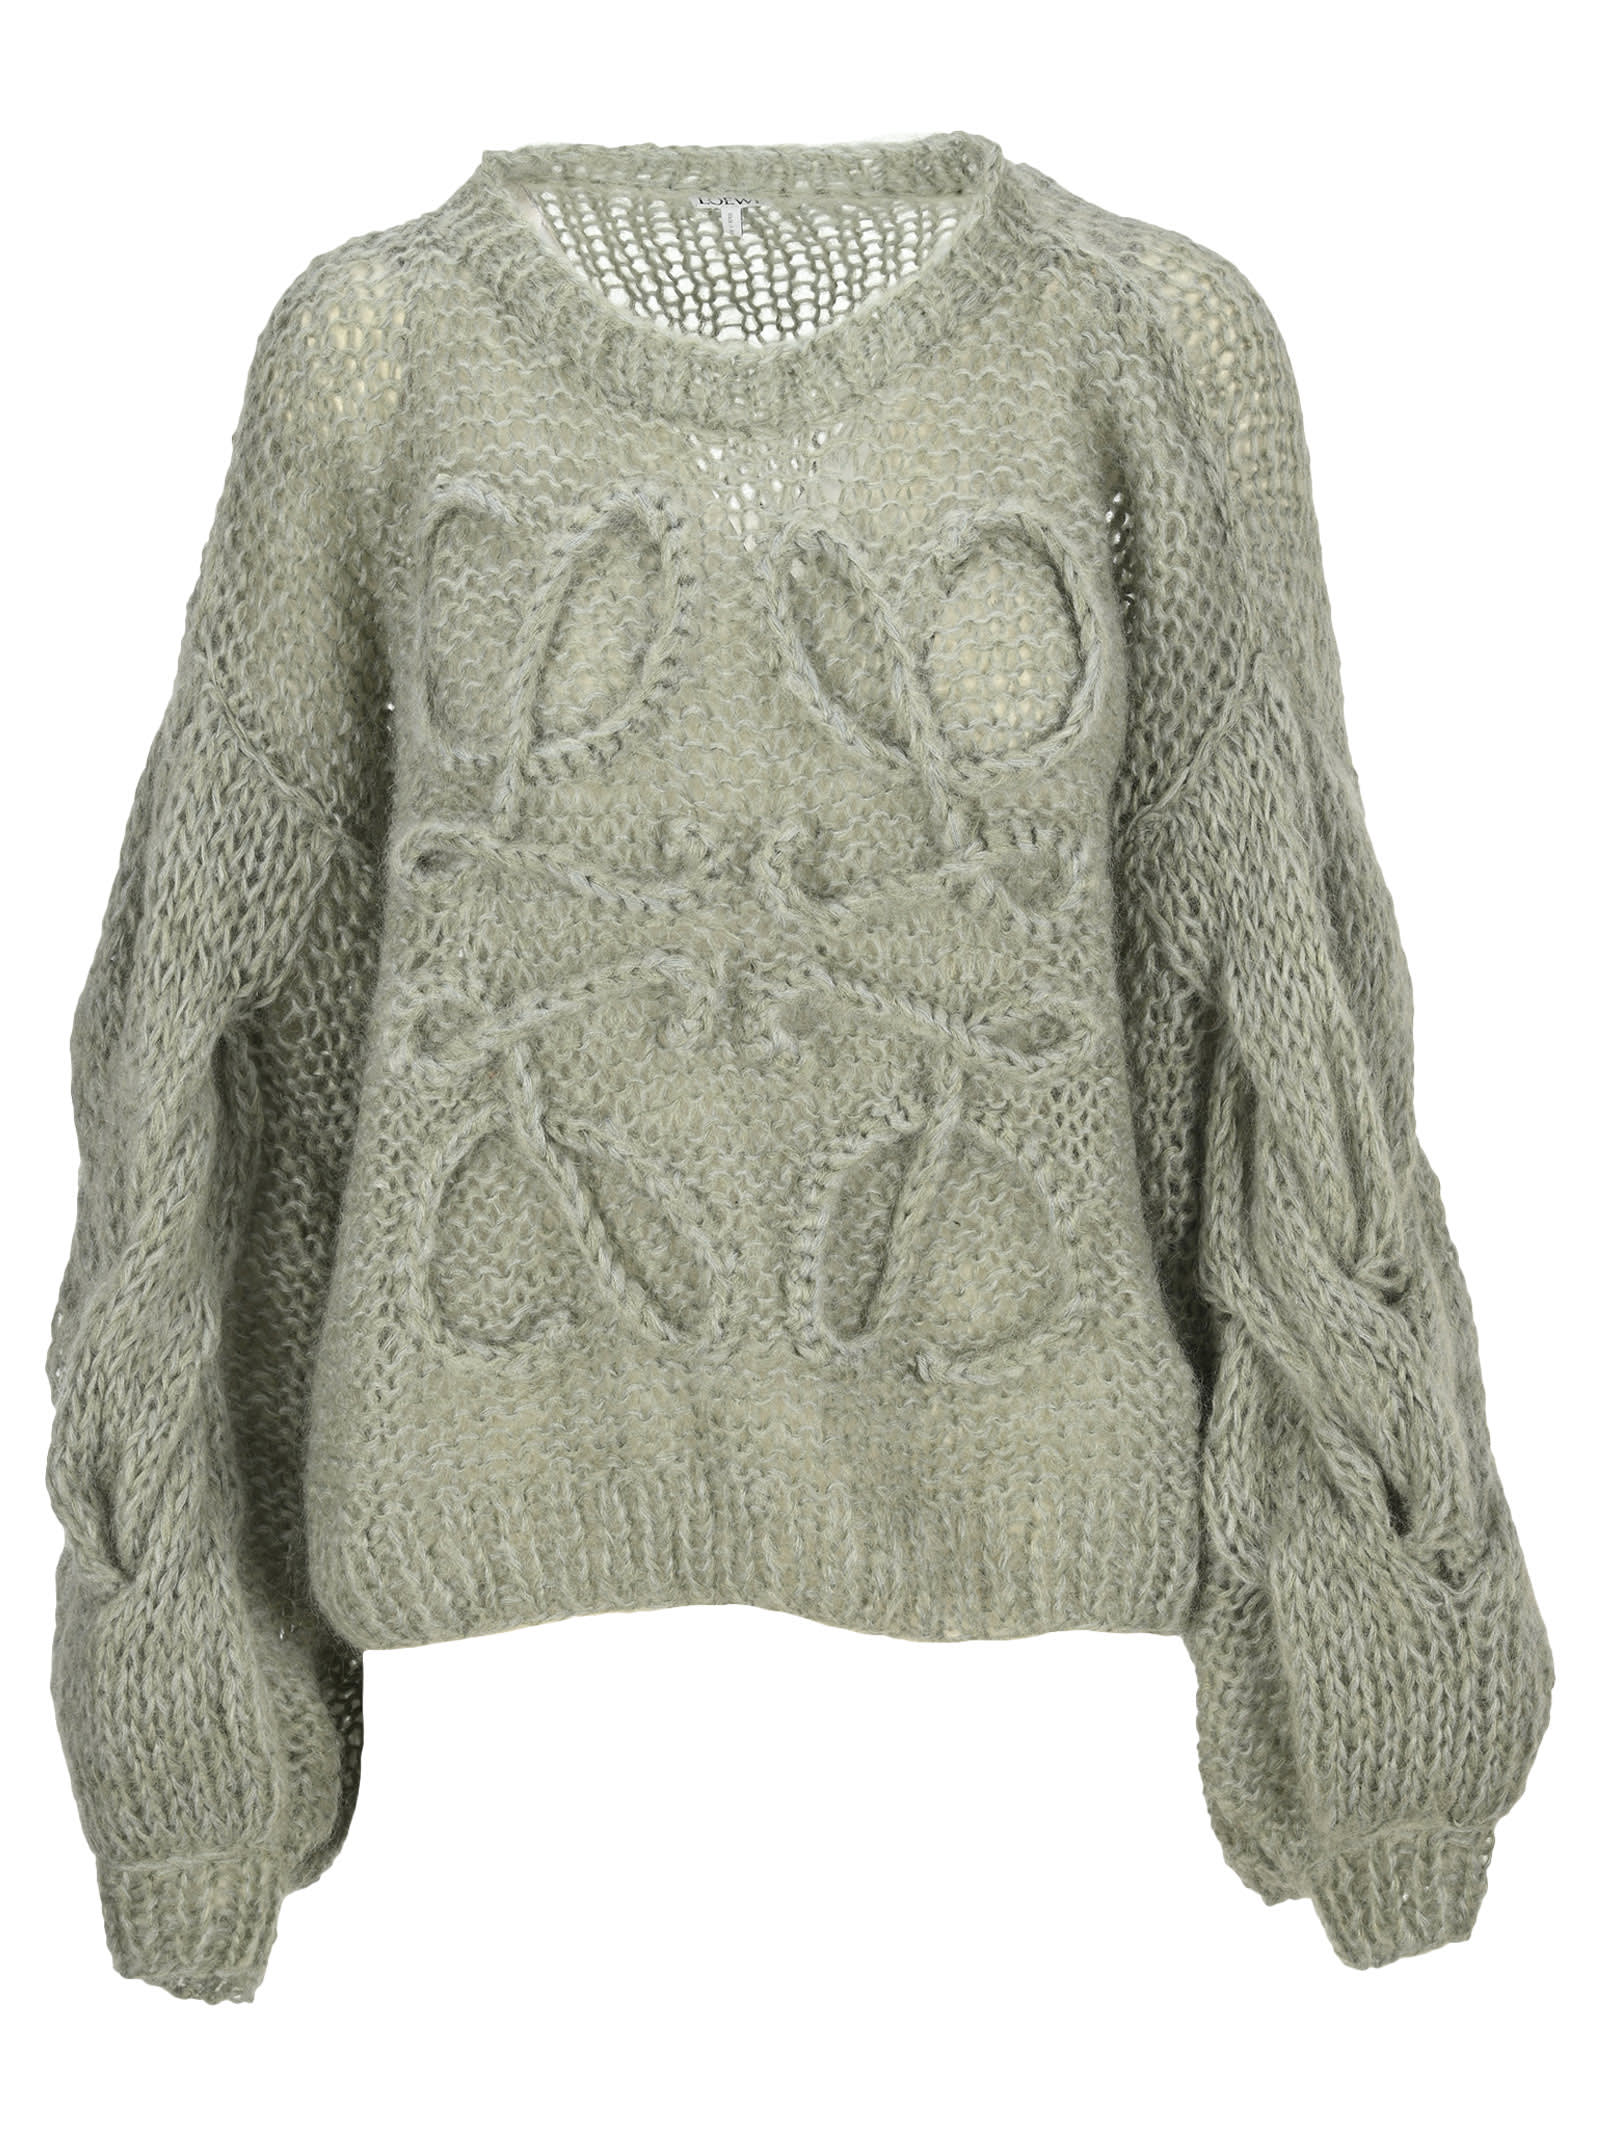 Loewe Denims ANAGRAM KNITTED SWEATER IN MOHAIR